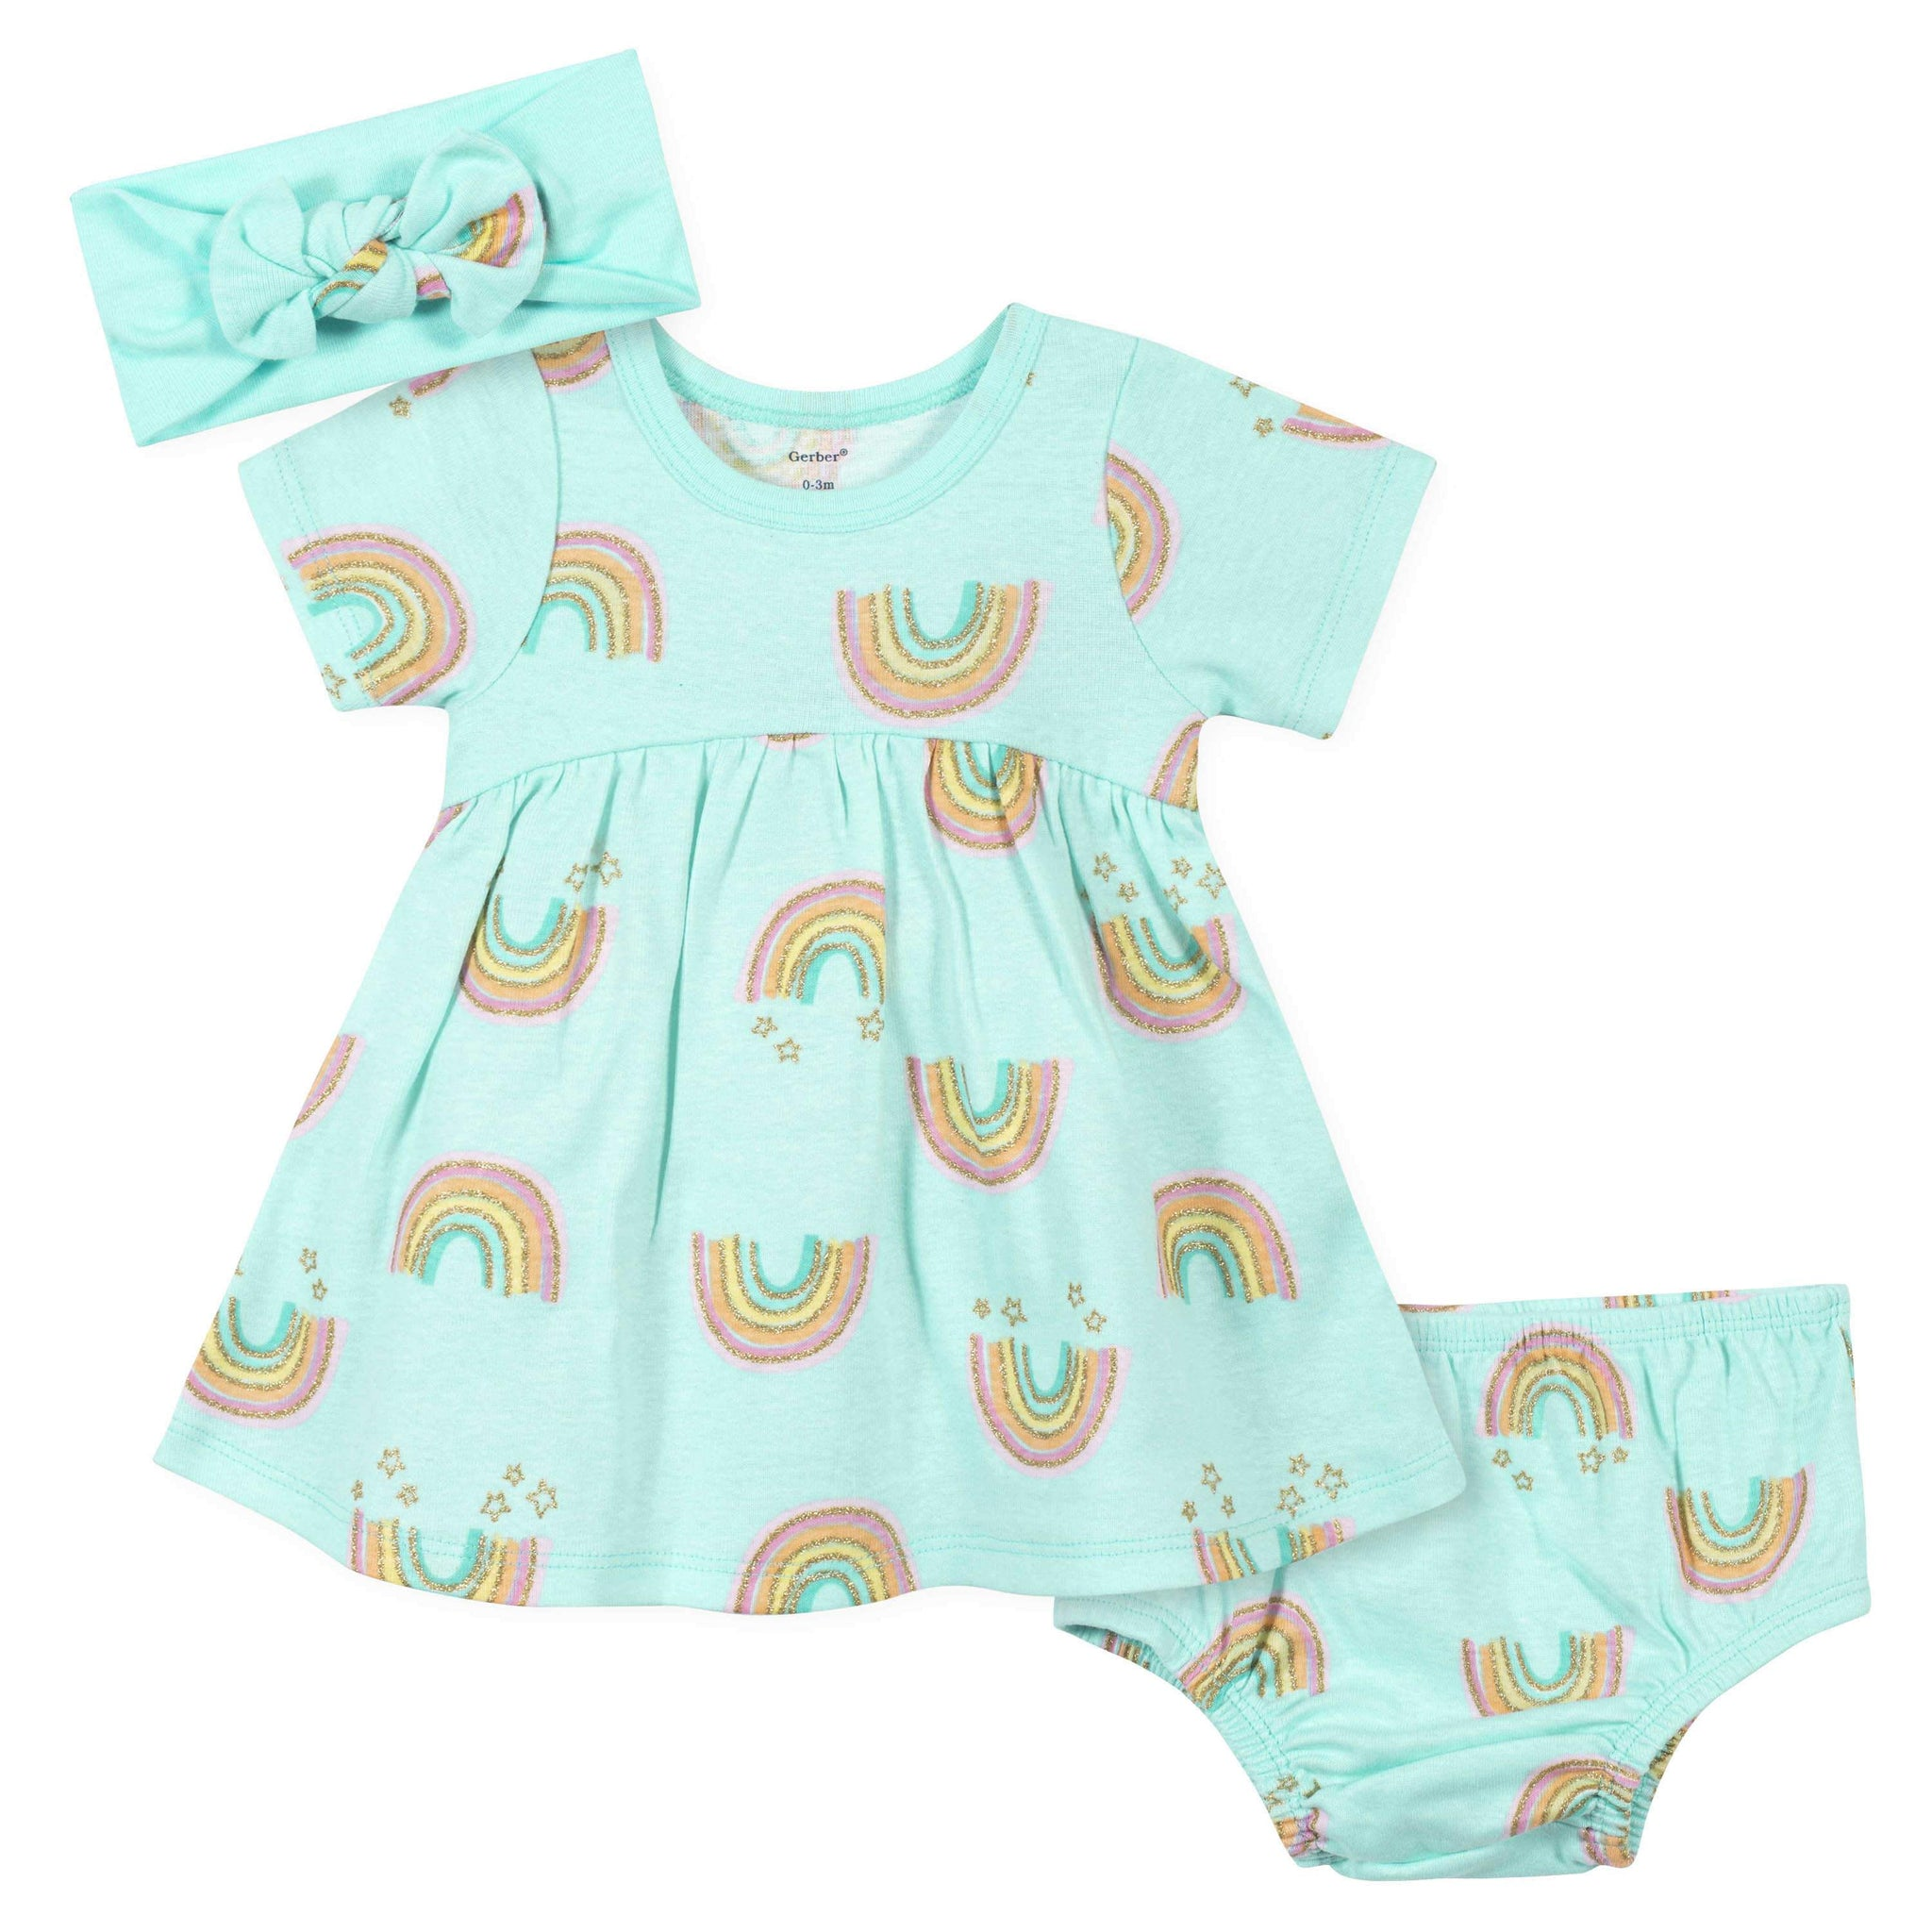 Gerber® 3-Piece Baby Girls Rainbow Dress, Diaper Cover, and Headband Set-Gerber Childrenswear